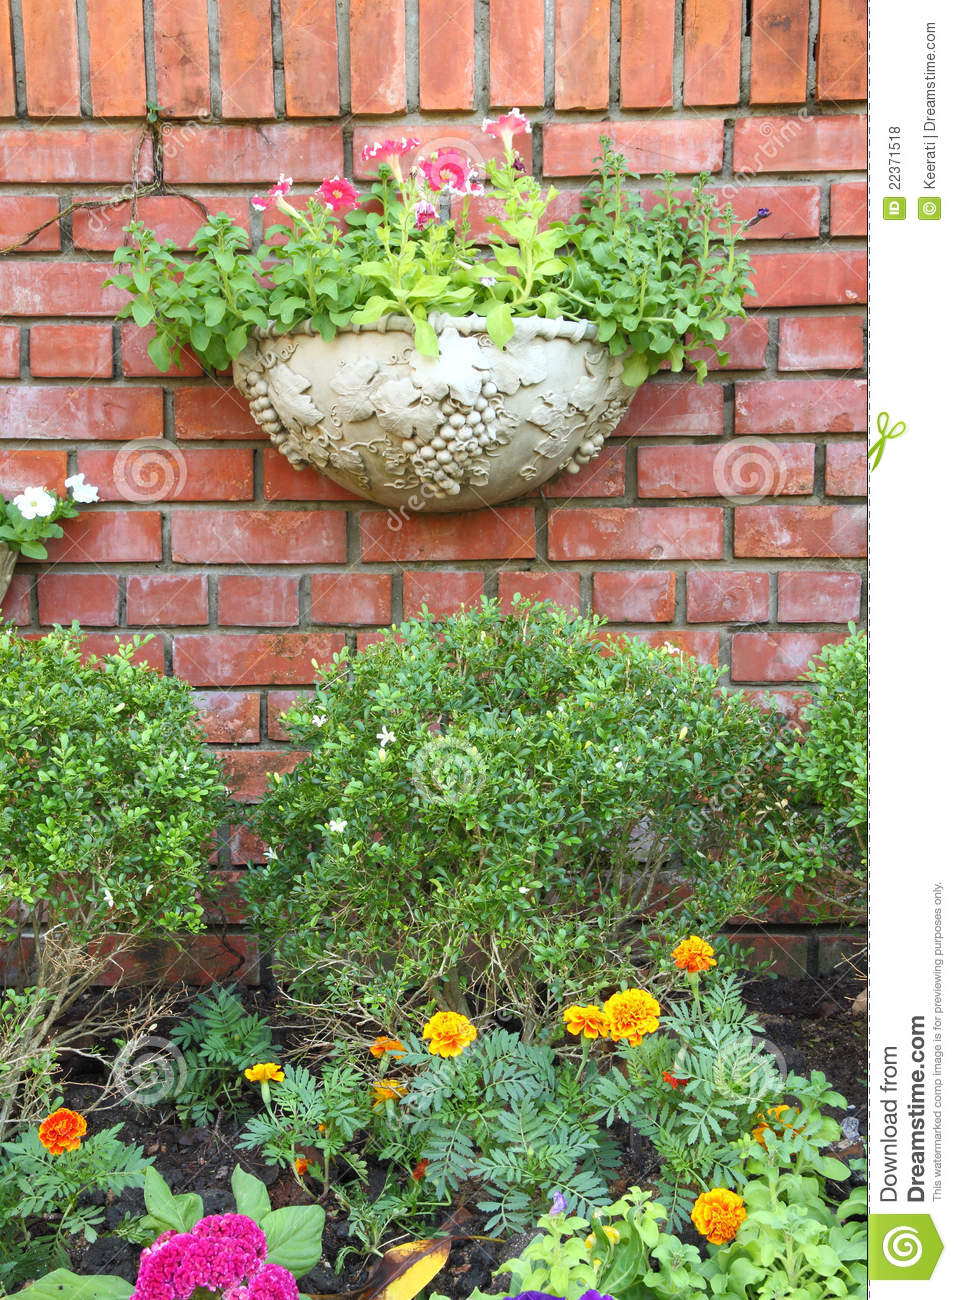 garden decoration brick wall royalty free stock photos - image